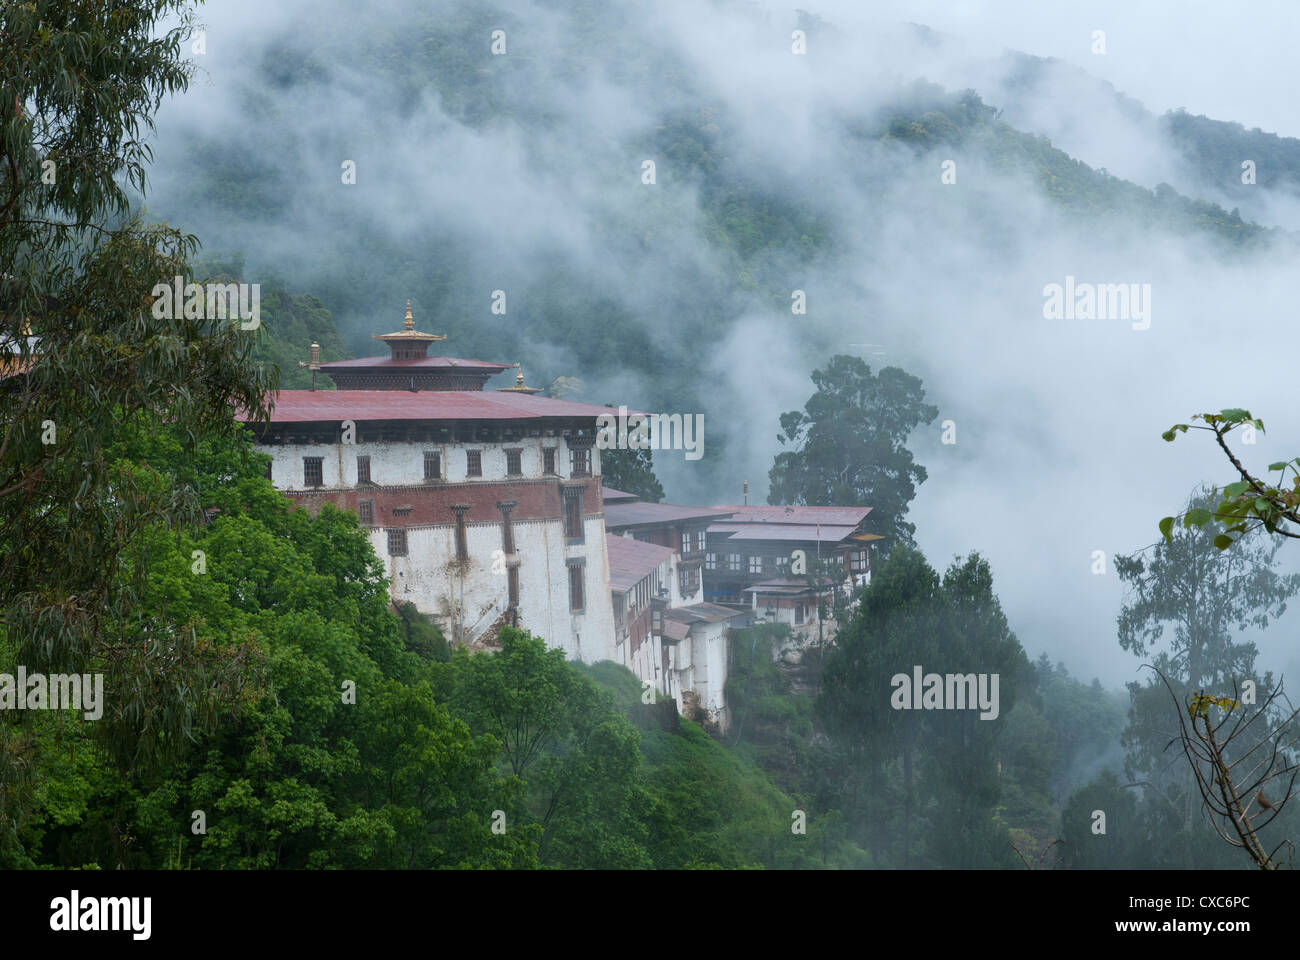 View of the Dzong with hills and fog, Trongsa, Bhutan, Asia - Stock Image